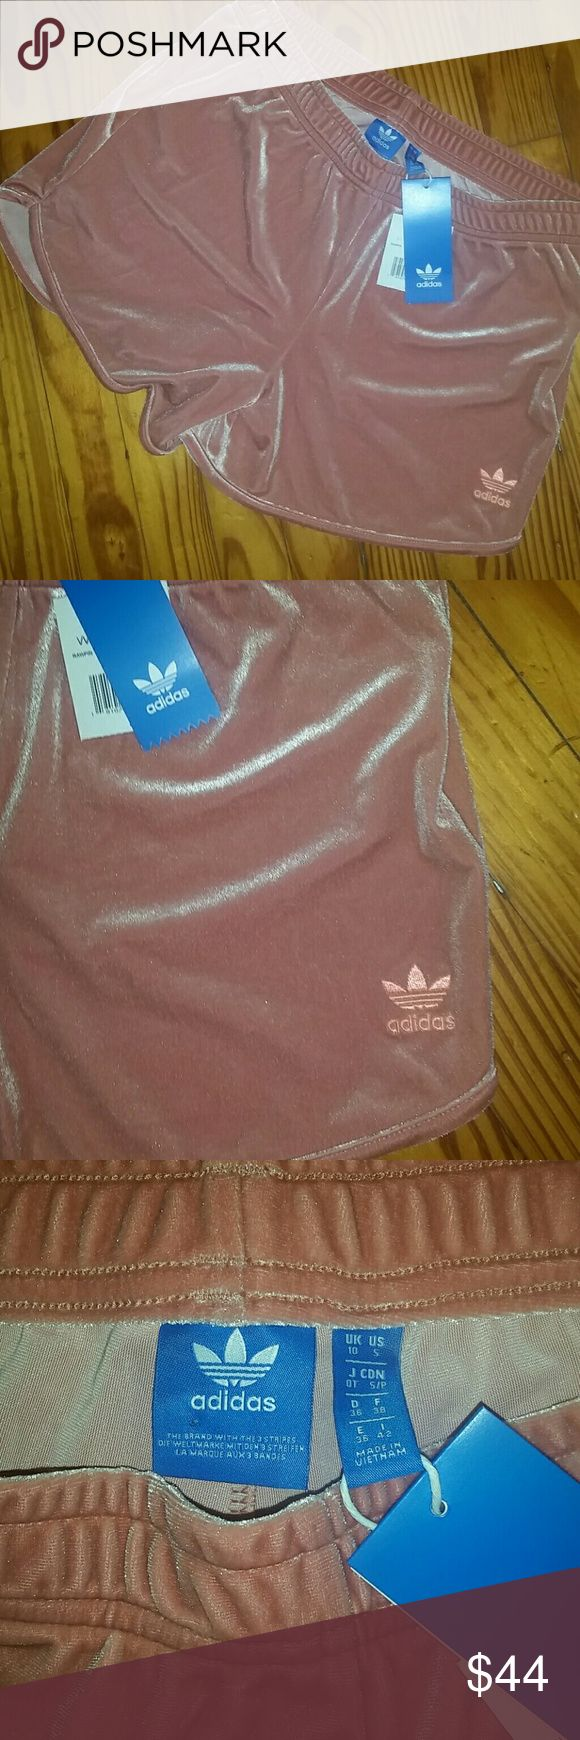 adidas.  Soft  velour shorts rose pink Soft velour pink shorts size small that fits more like a medium adidas Shorts